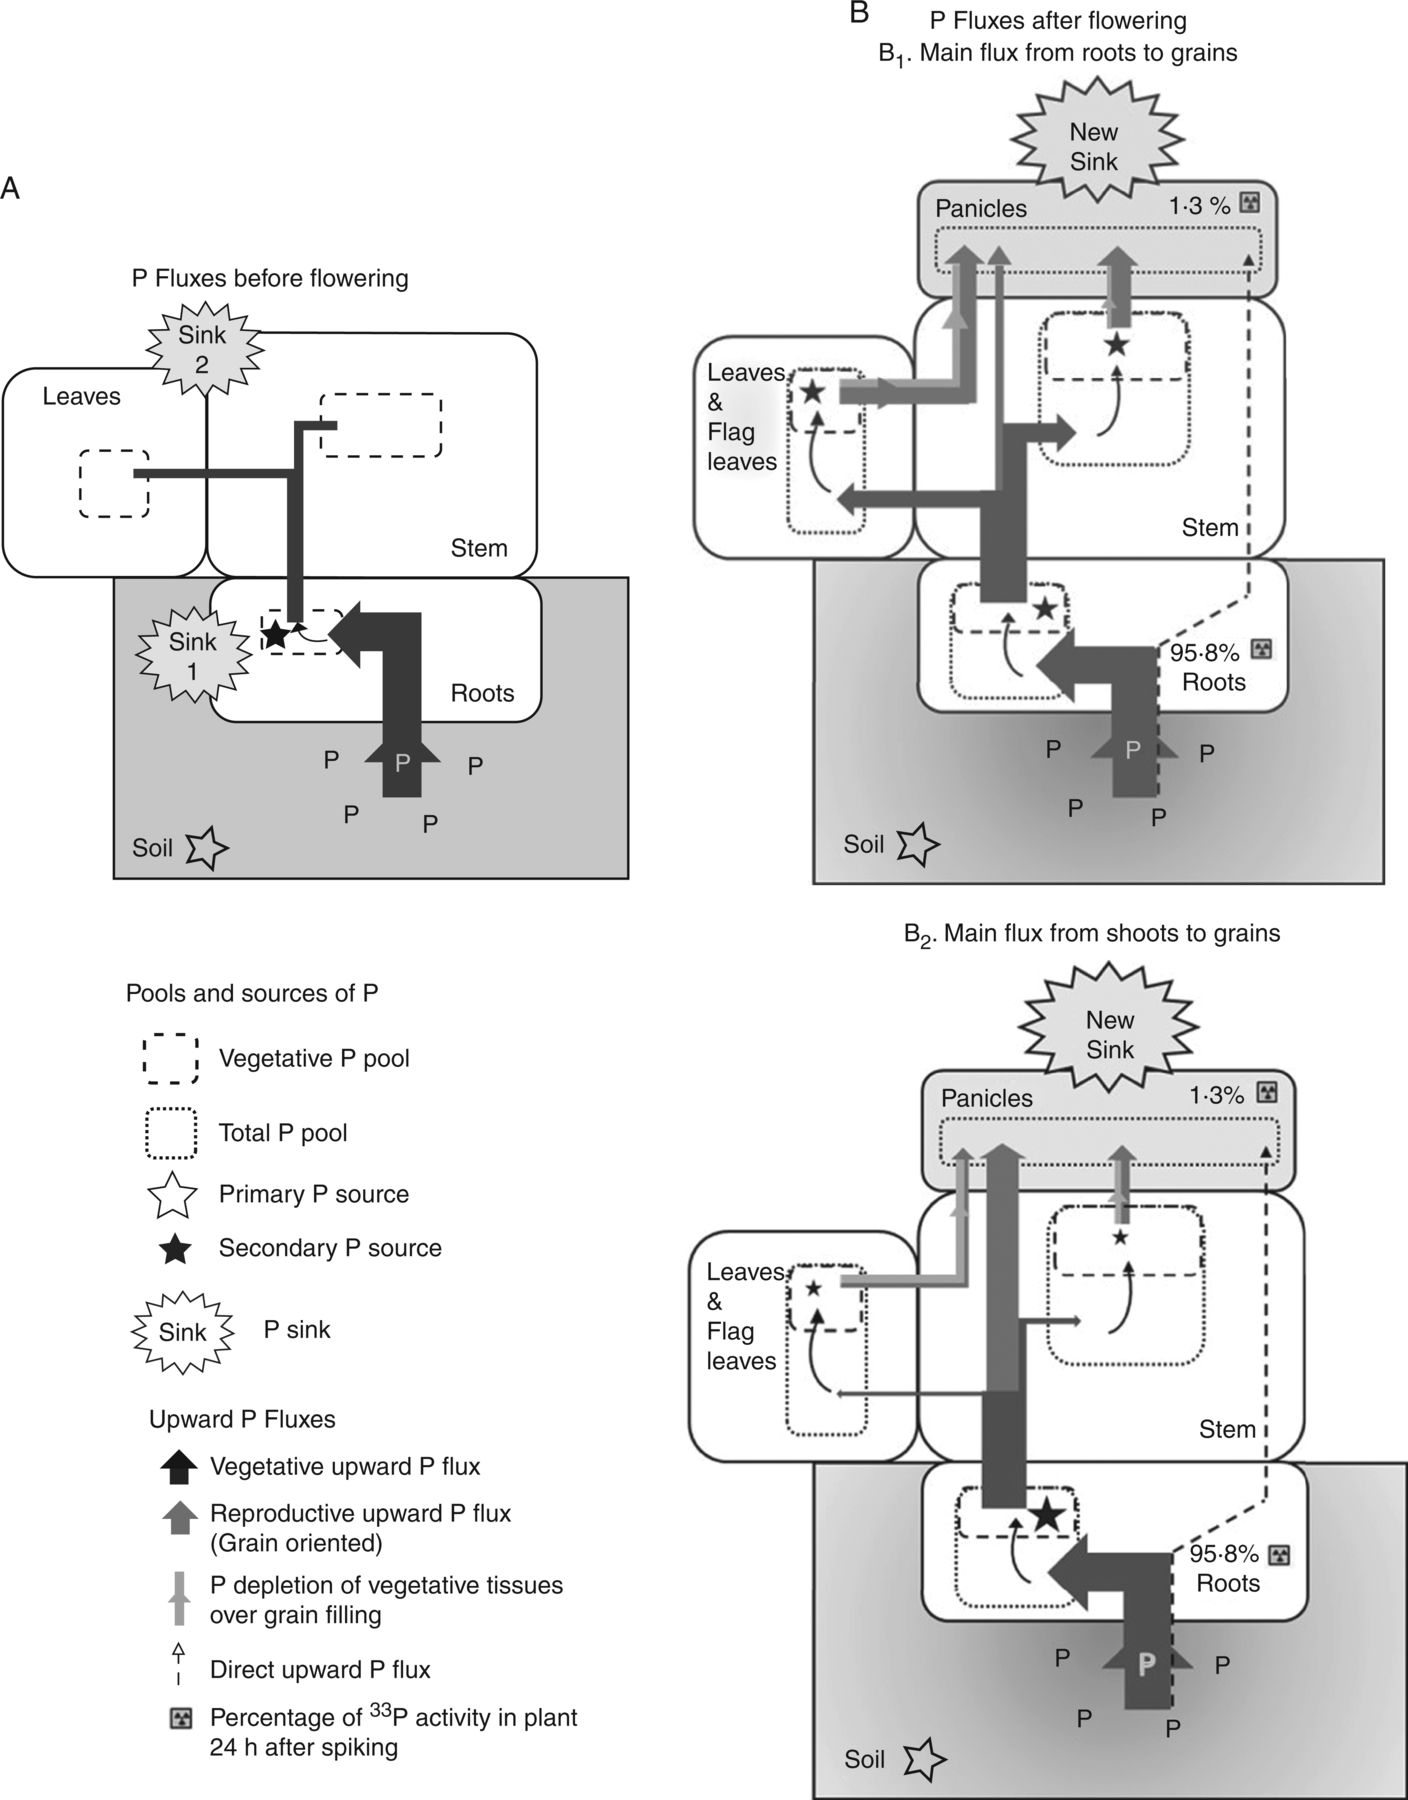 hight resolution of proposed model of upward p fluxes in rice plants before a and after